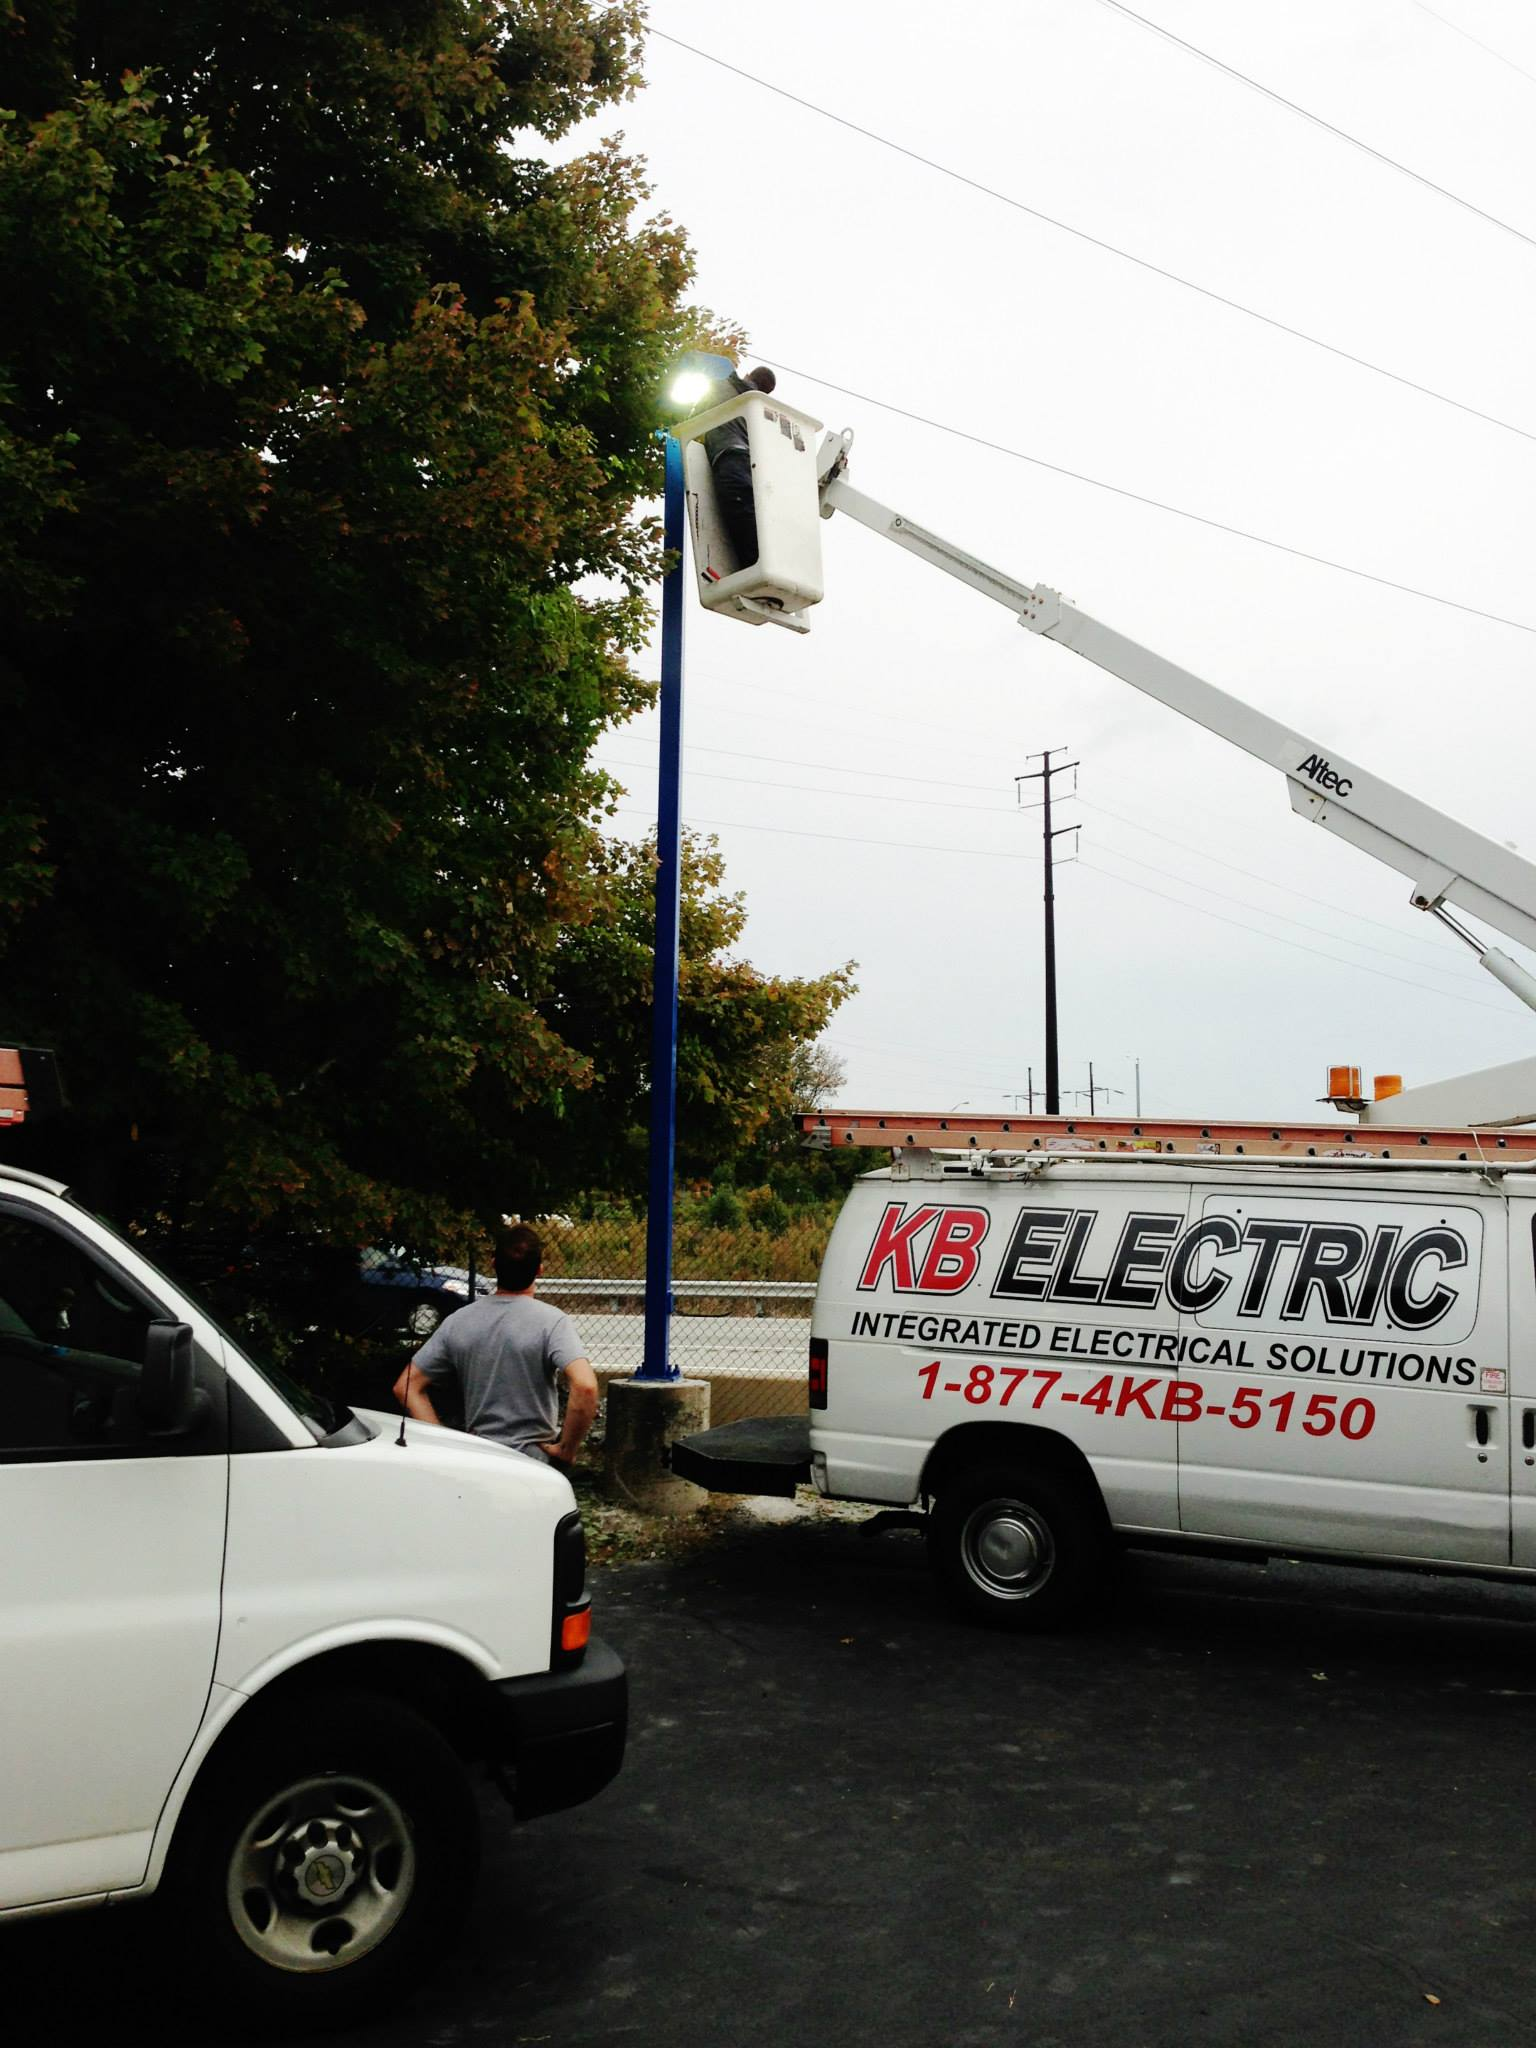 Commercial Electrician Kb Electric Llc